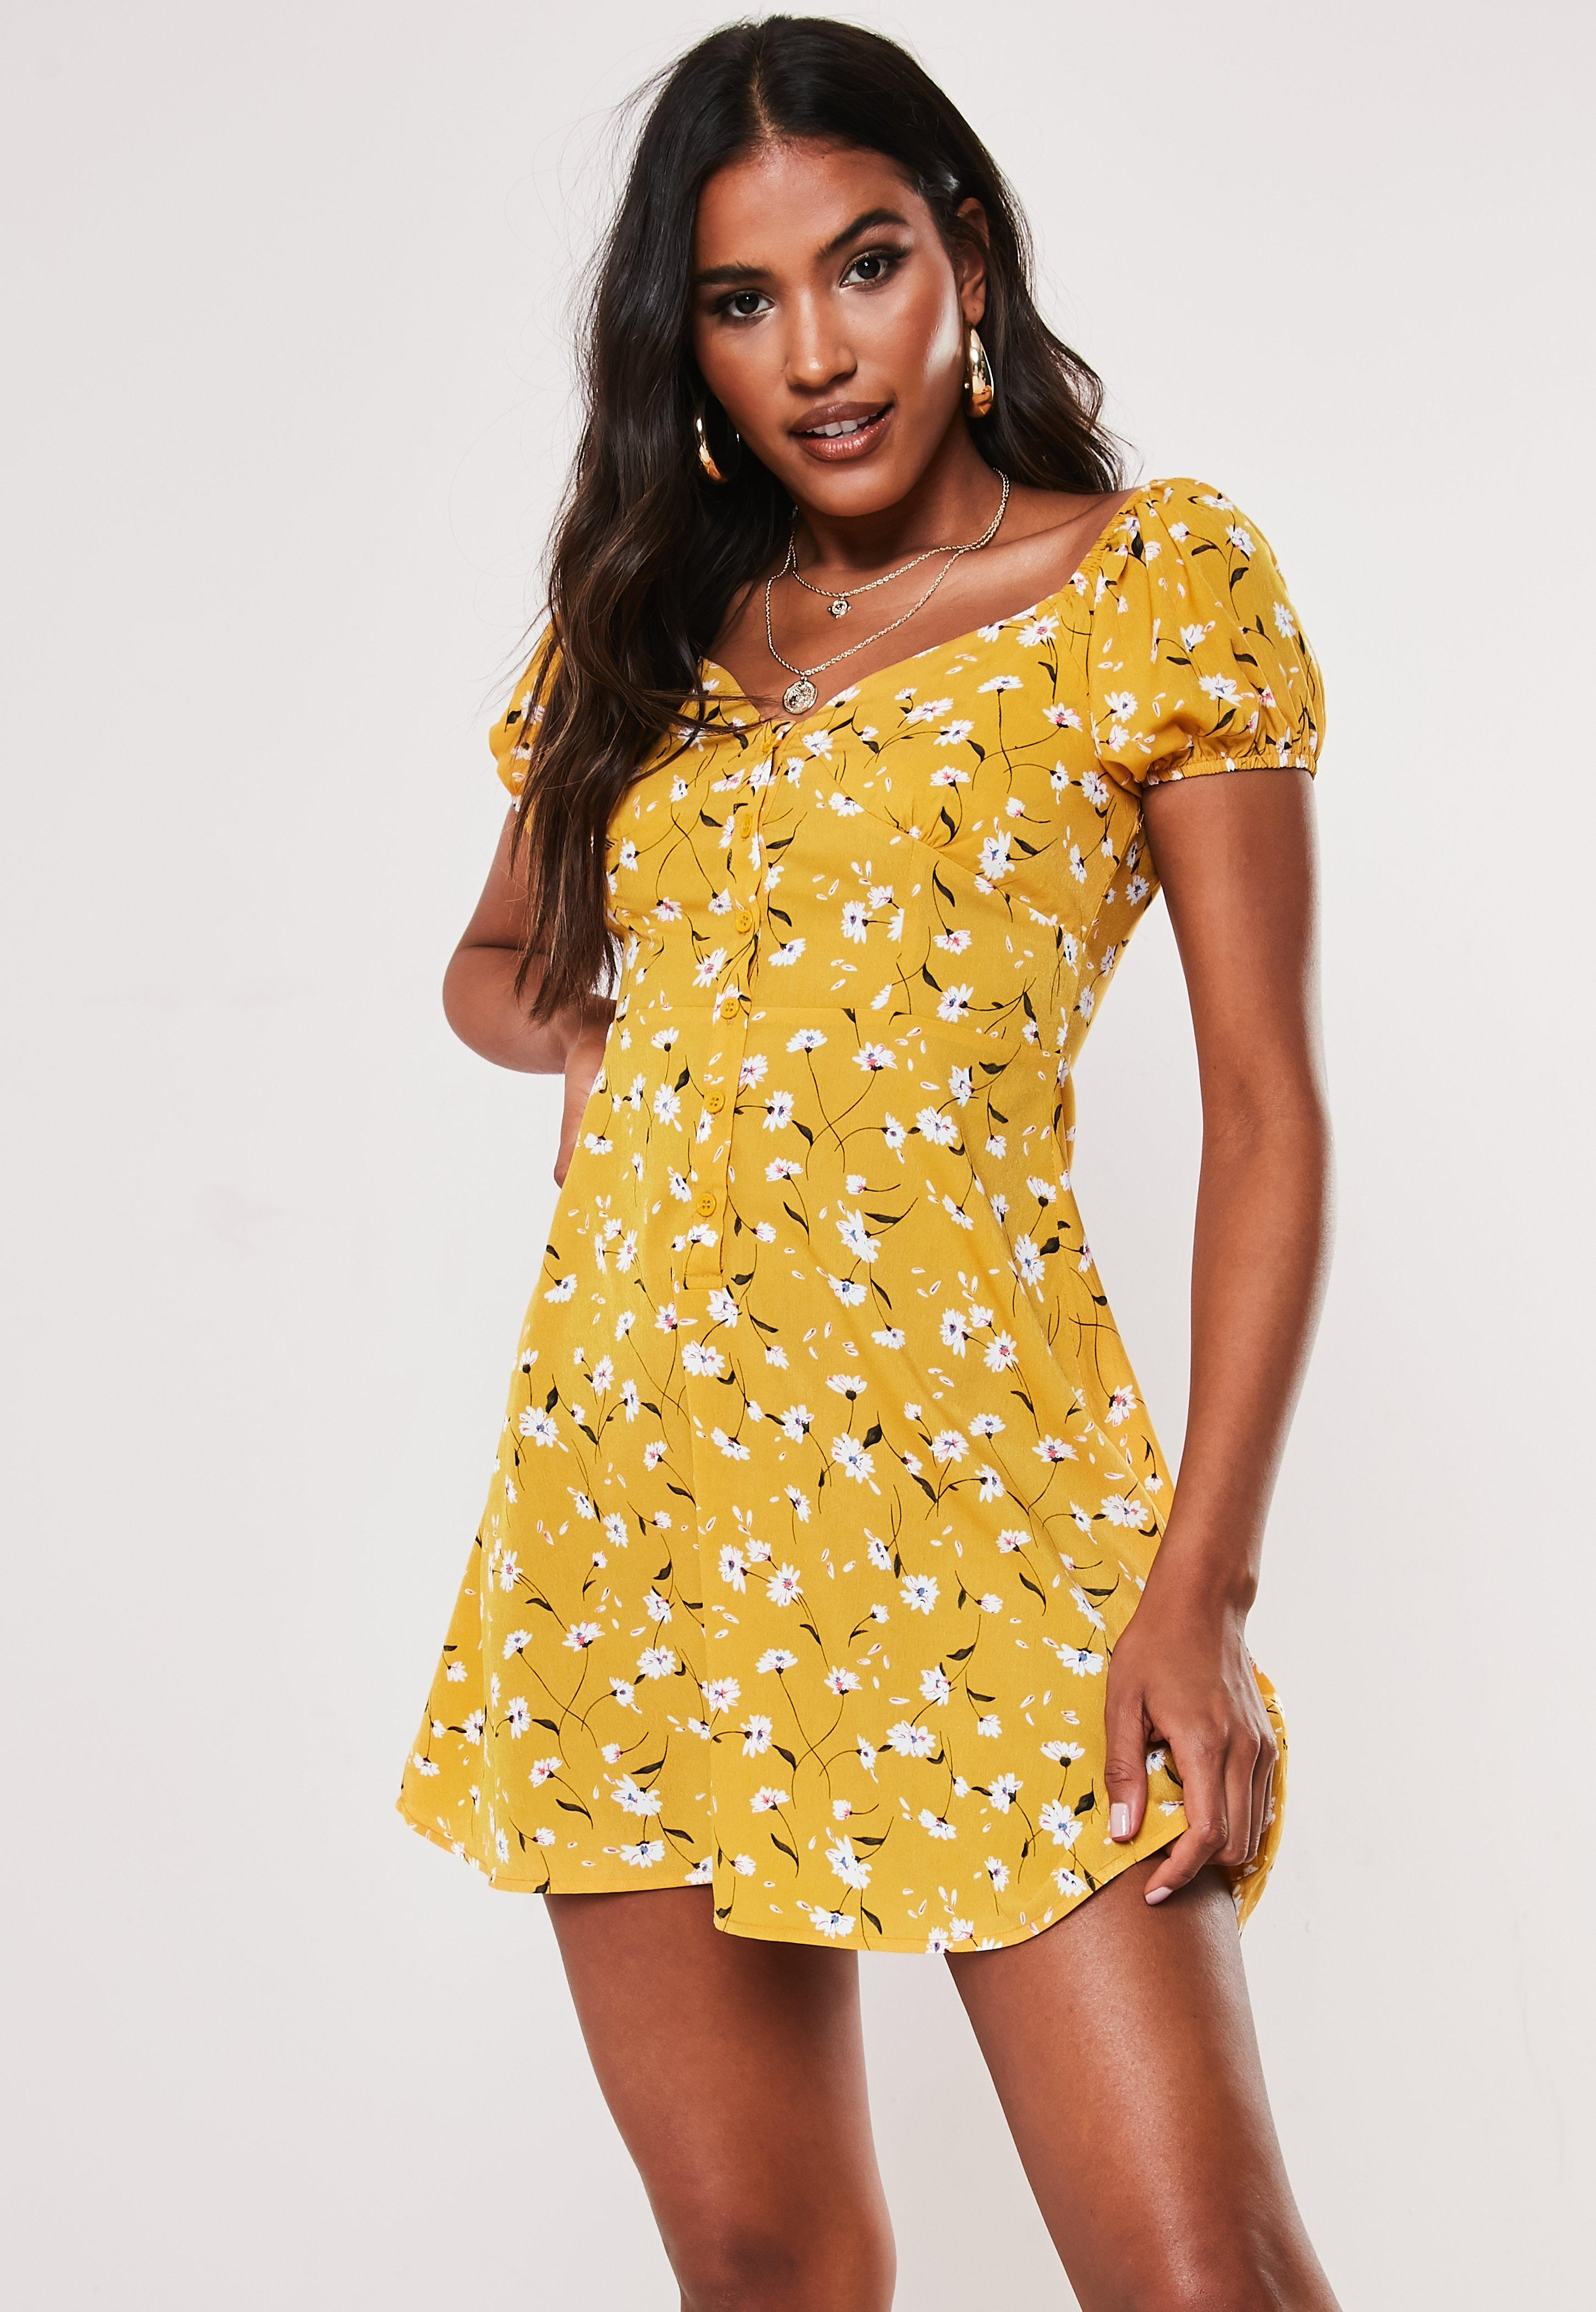 7bb6dcc6136d Floral Dresses | Flower Print Dresses - Missguided